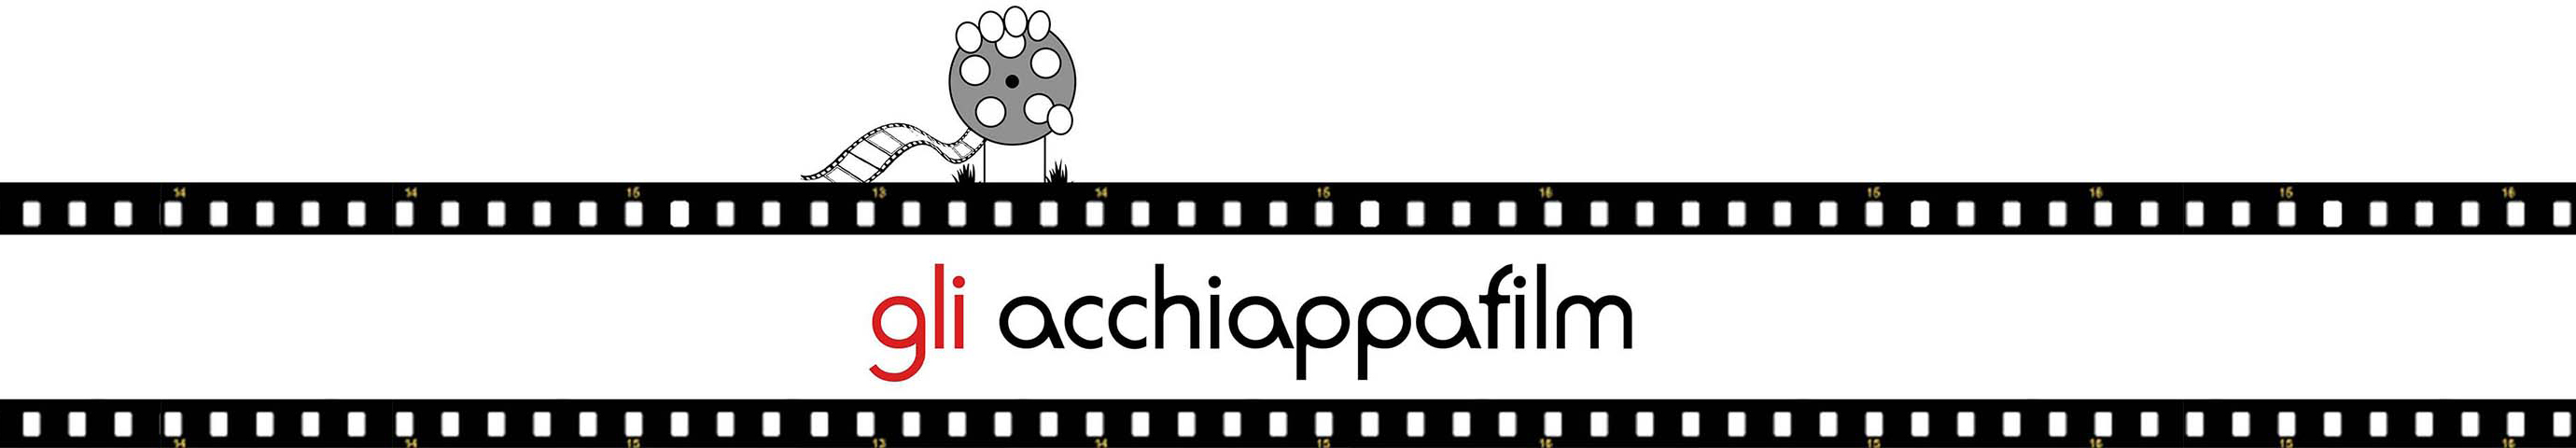 Gli acchiappafilm | Cinema e tv: i film, le serie